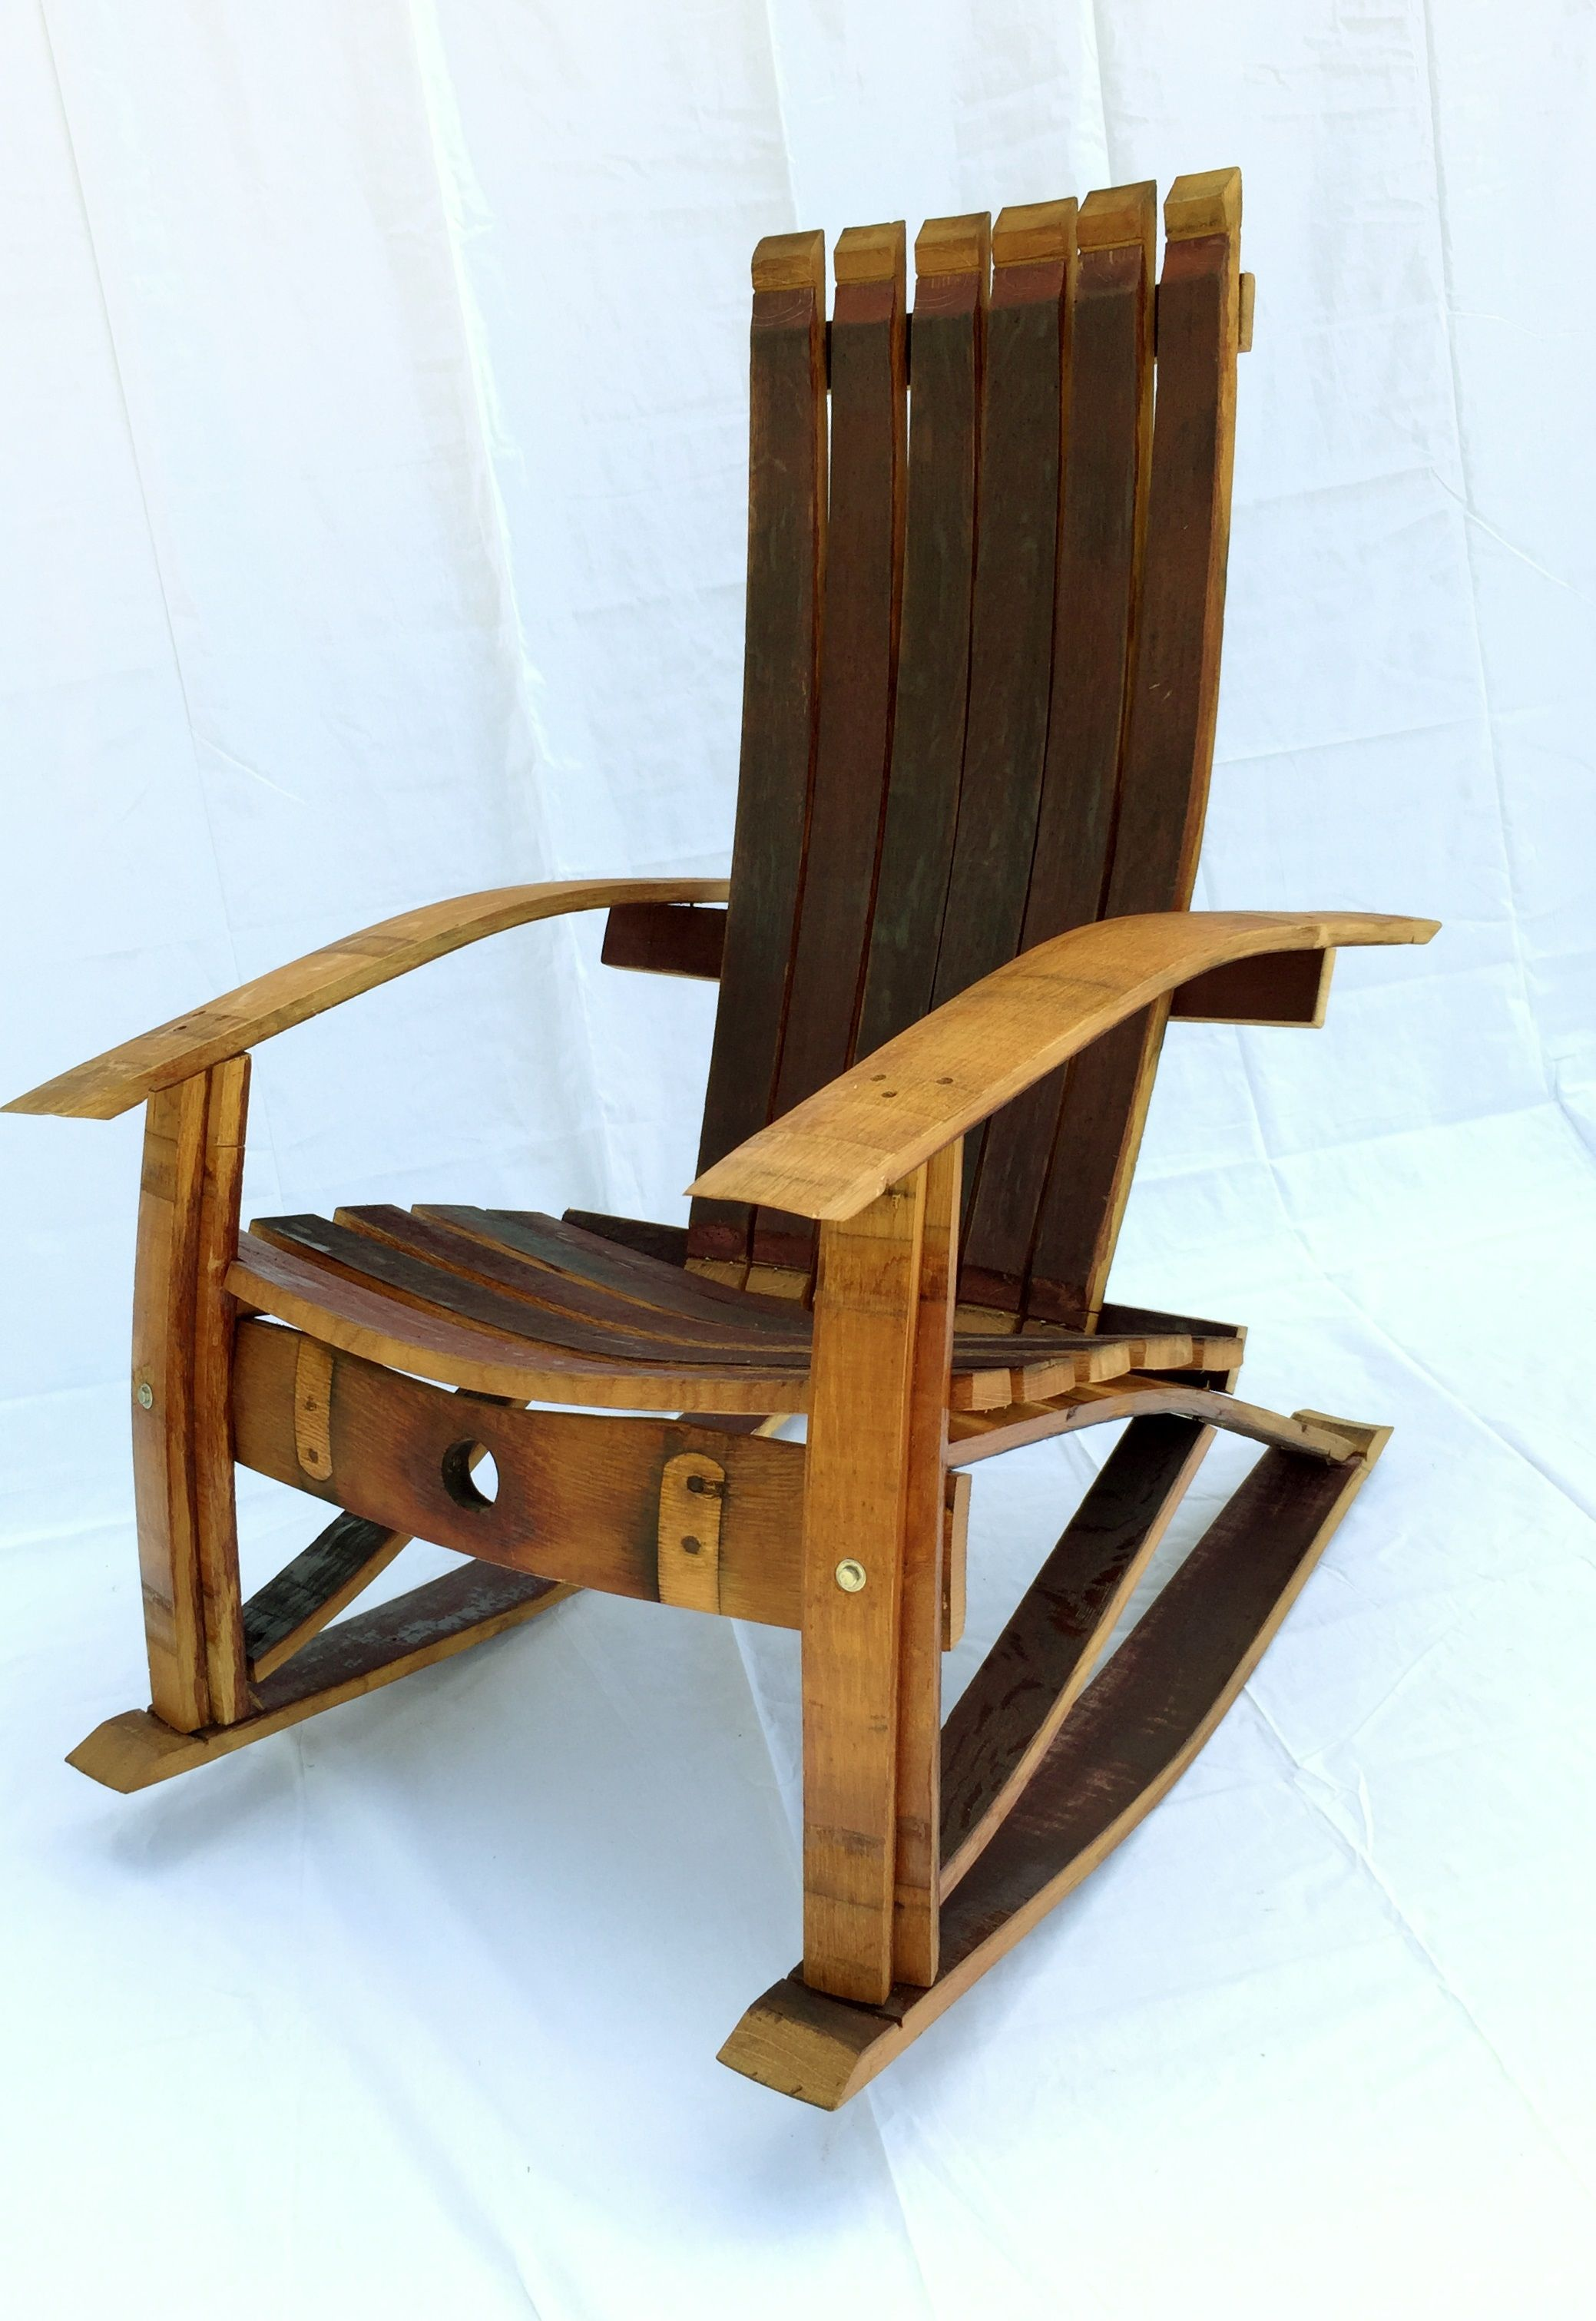 Crate And Barrel Rocking Chair Diy Wine Barrel Rocking Chair Wood Plans Very Simple To Build